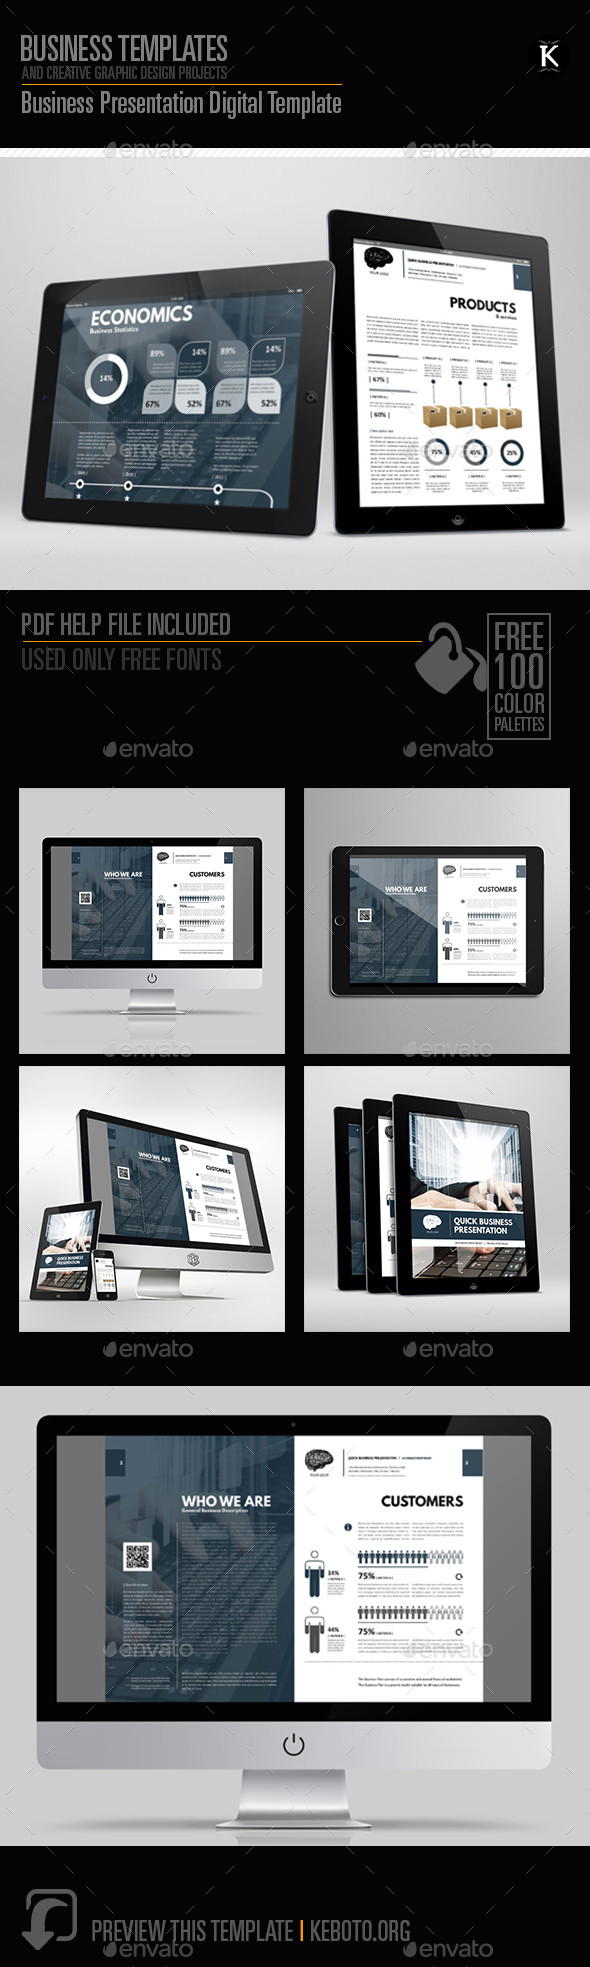 Business Presentation Digital Template - ePublishing